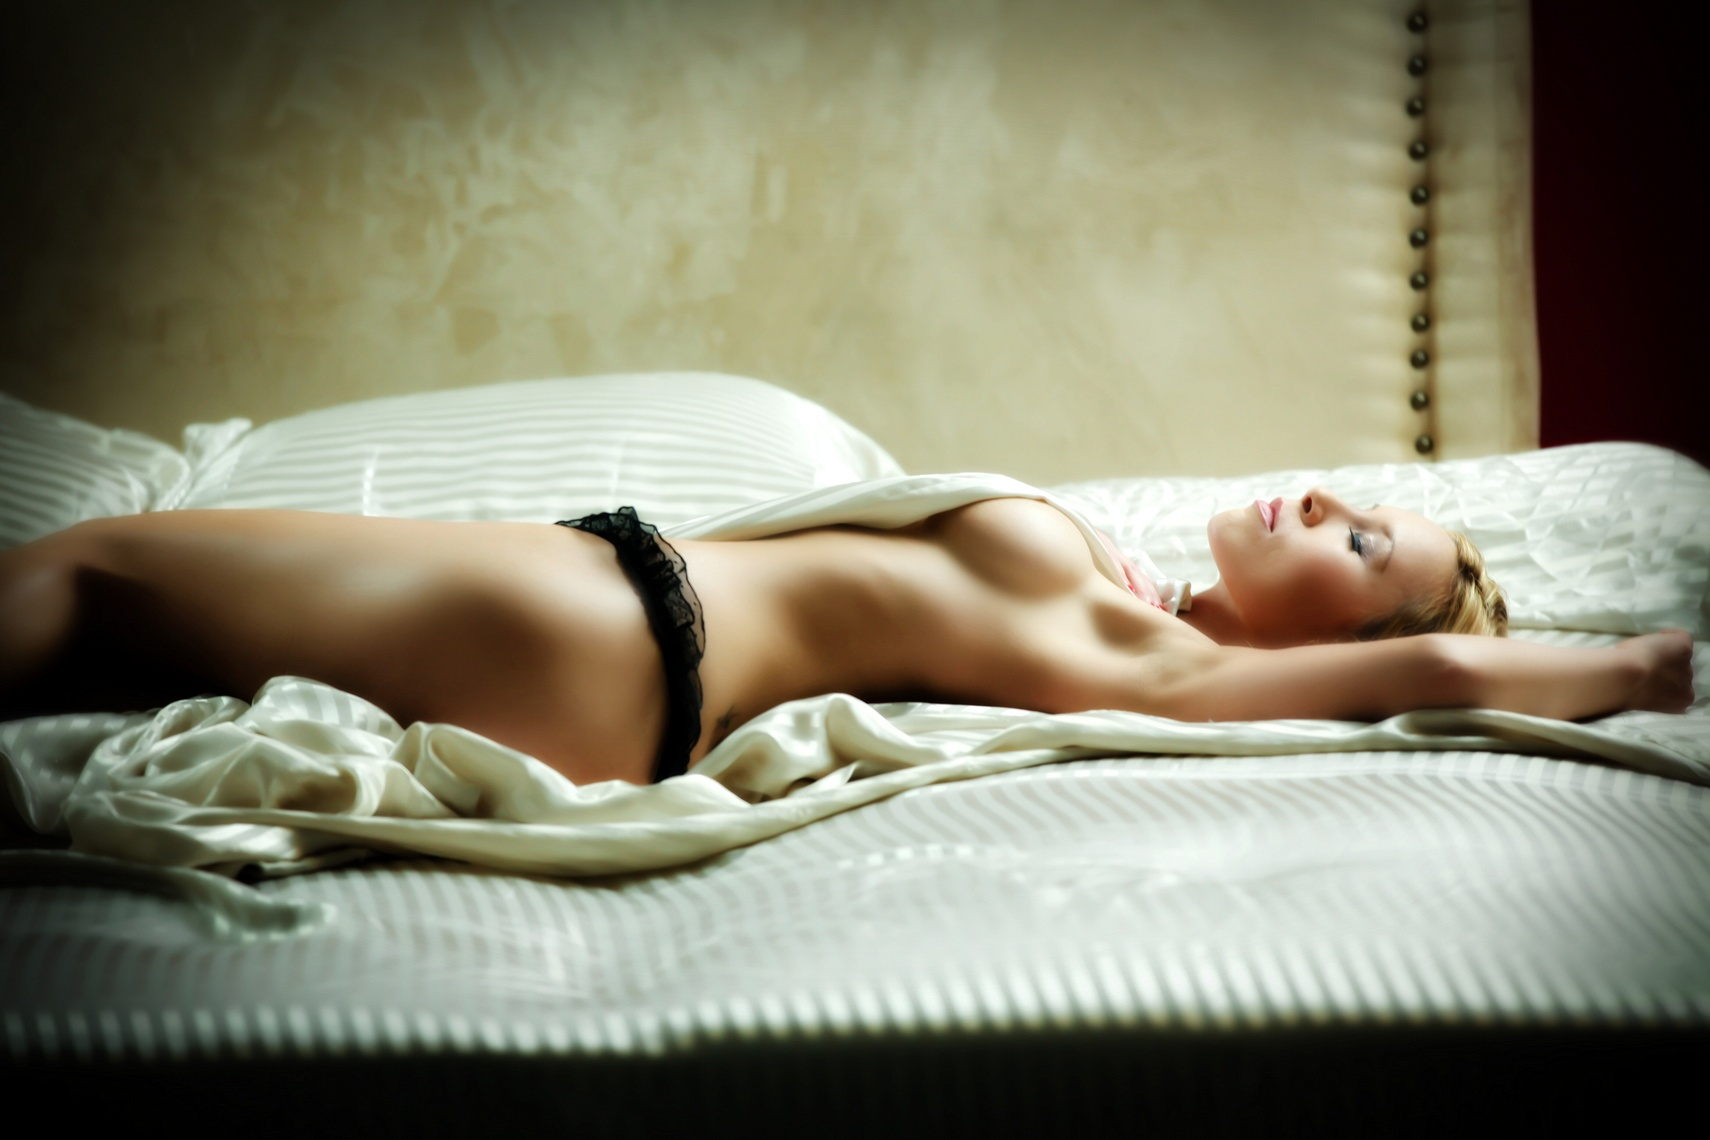 058Boudoirforwwebsite